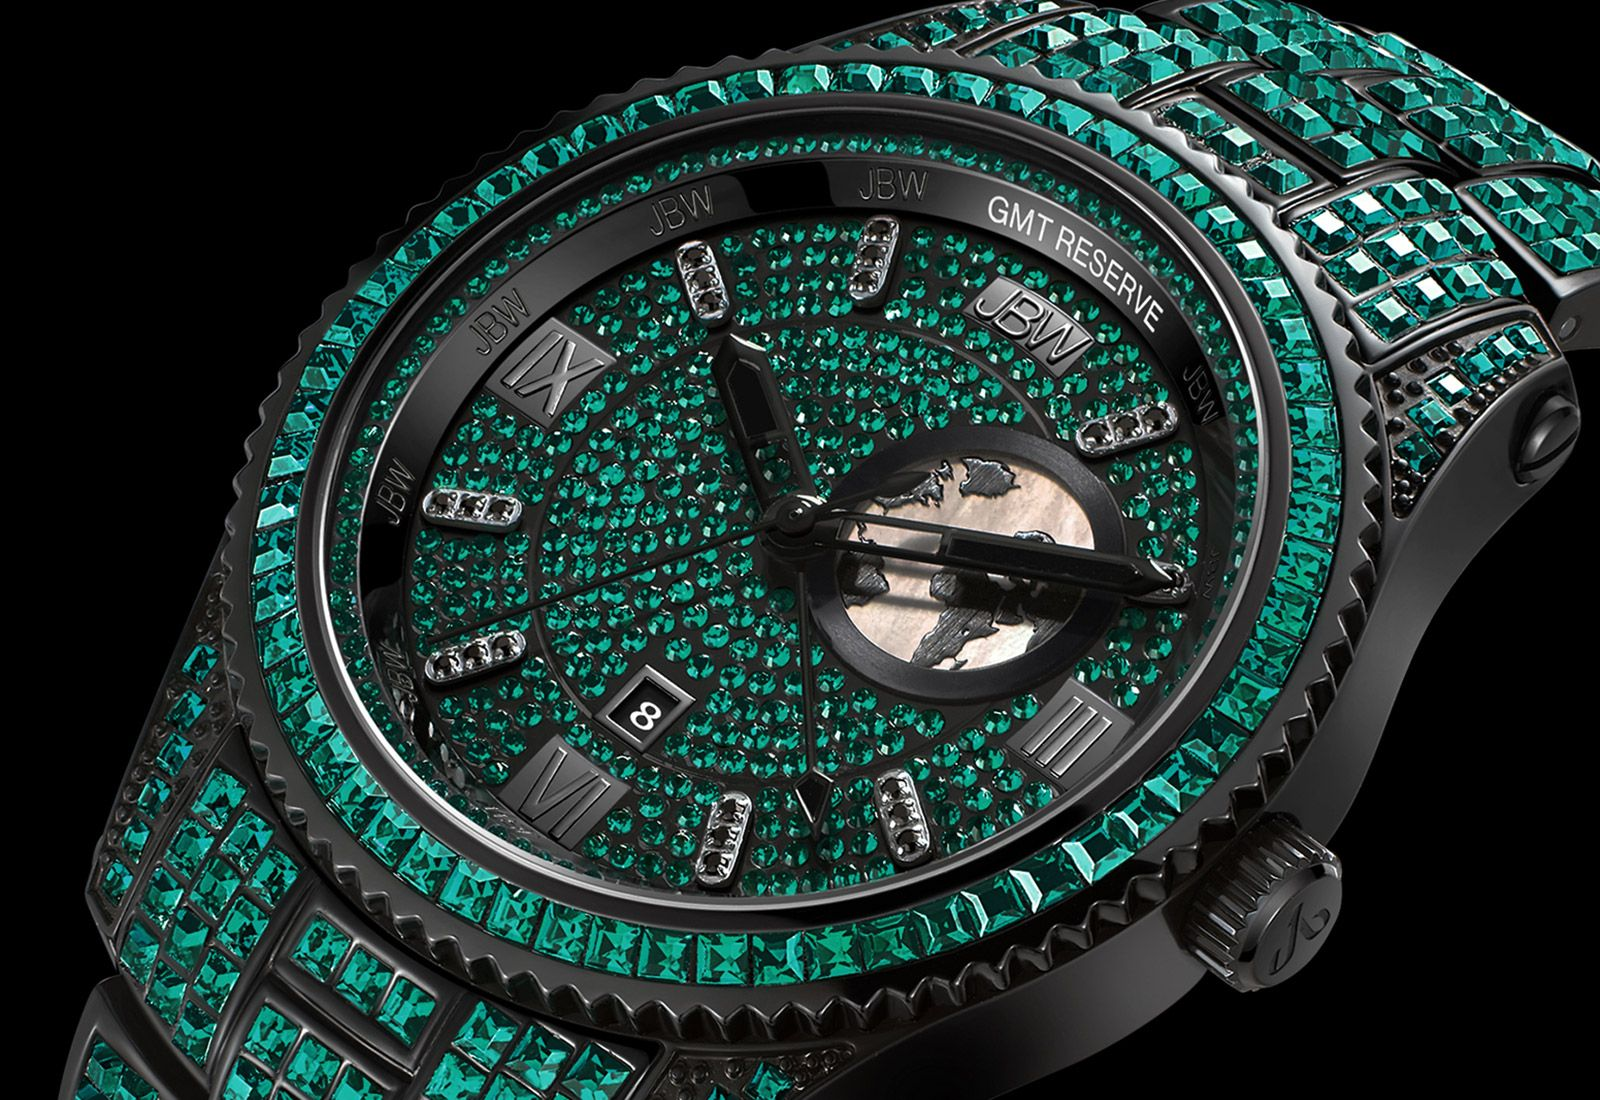 jbw-emerald-reserve-gmt-header